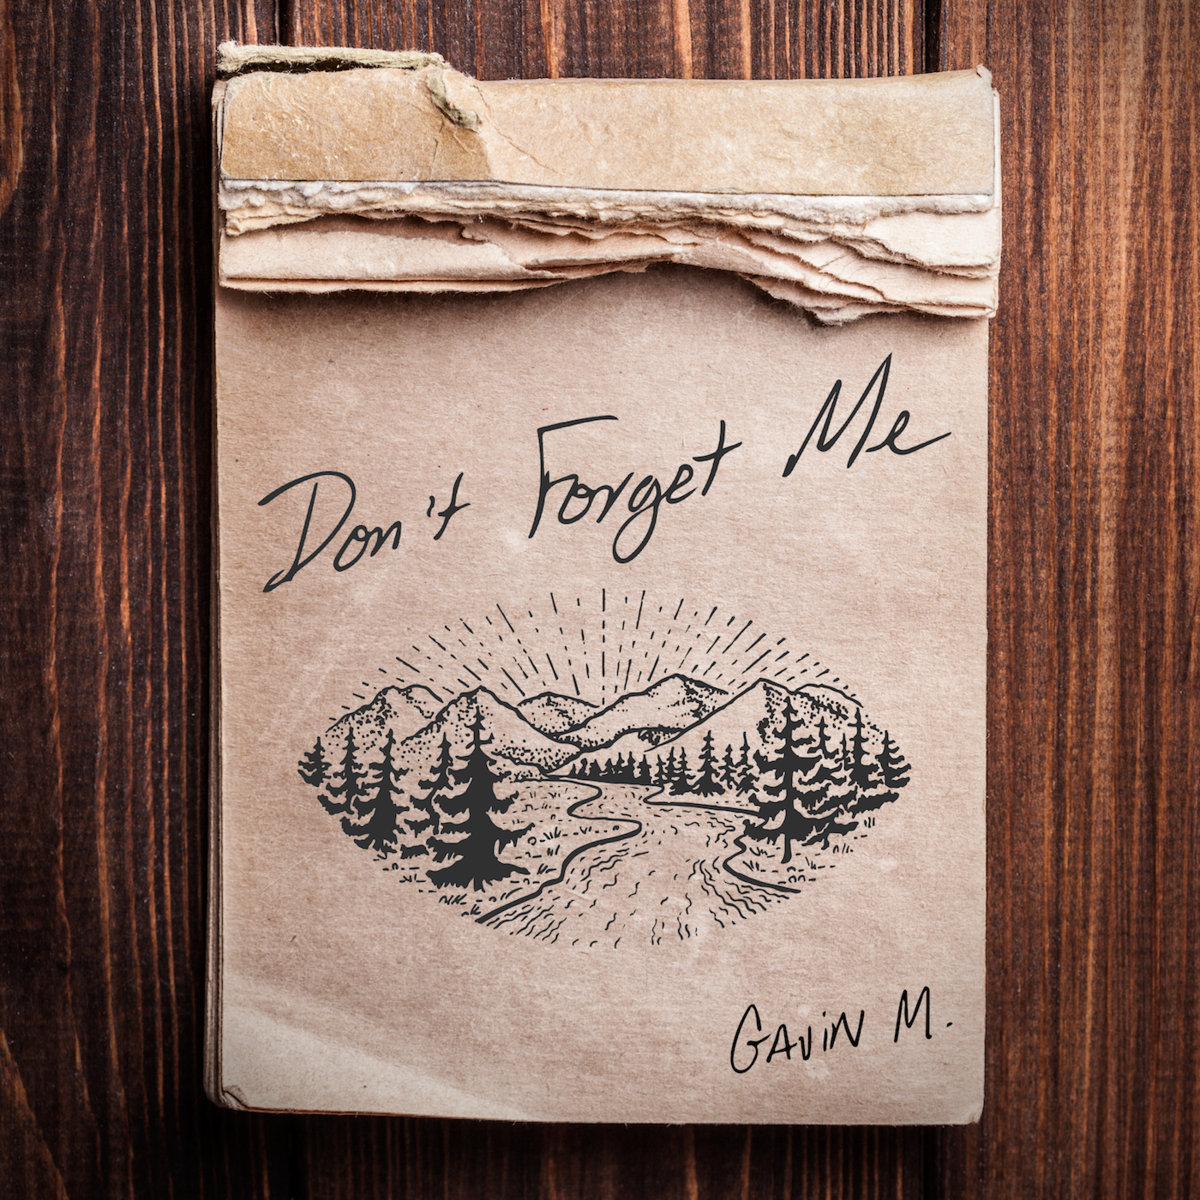 Gavin M. – Don't Forget Me